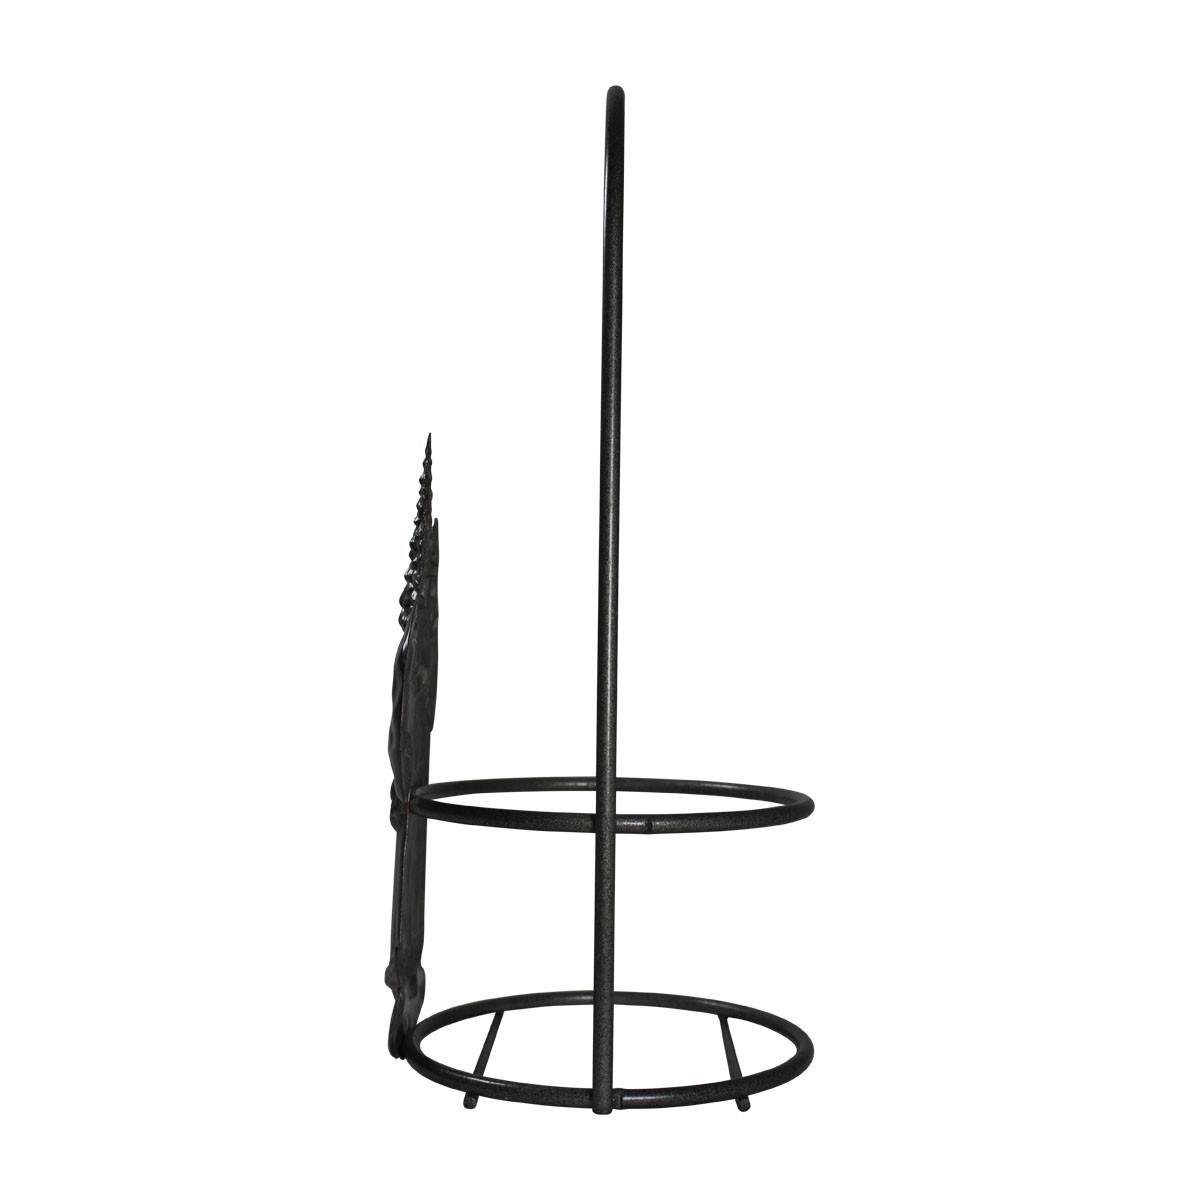 Candle Holder Grey Wrought Iron 10.5H x 4.5D Candle Holders Candle Holder Jar Candle Holder